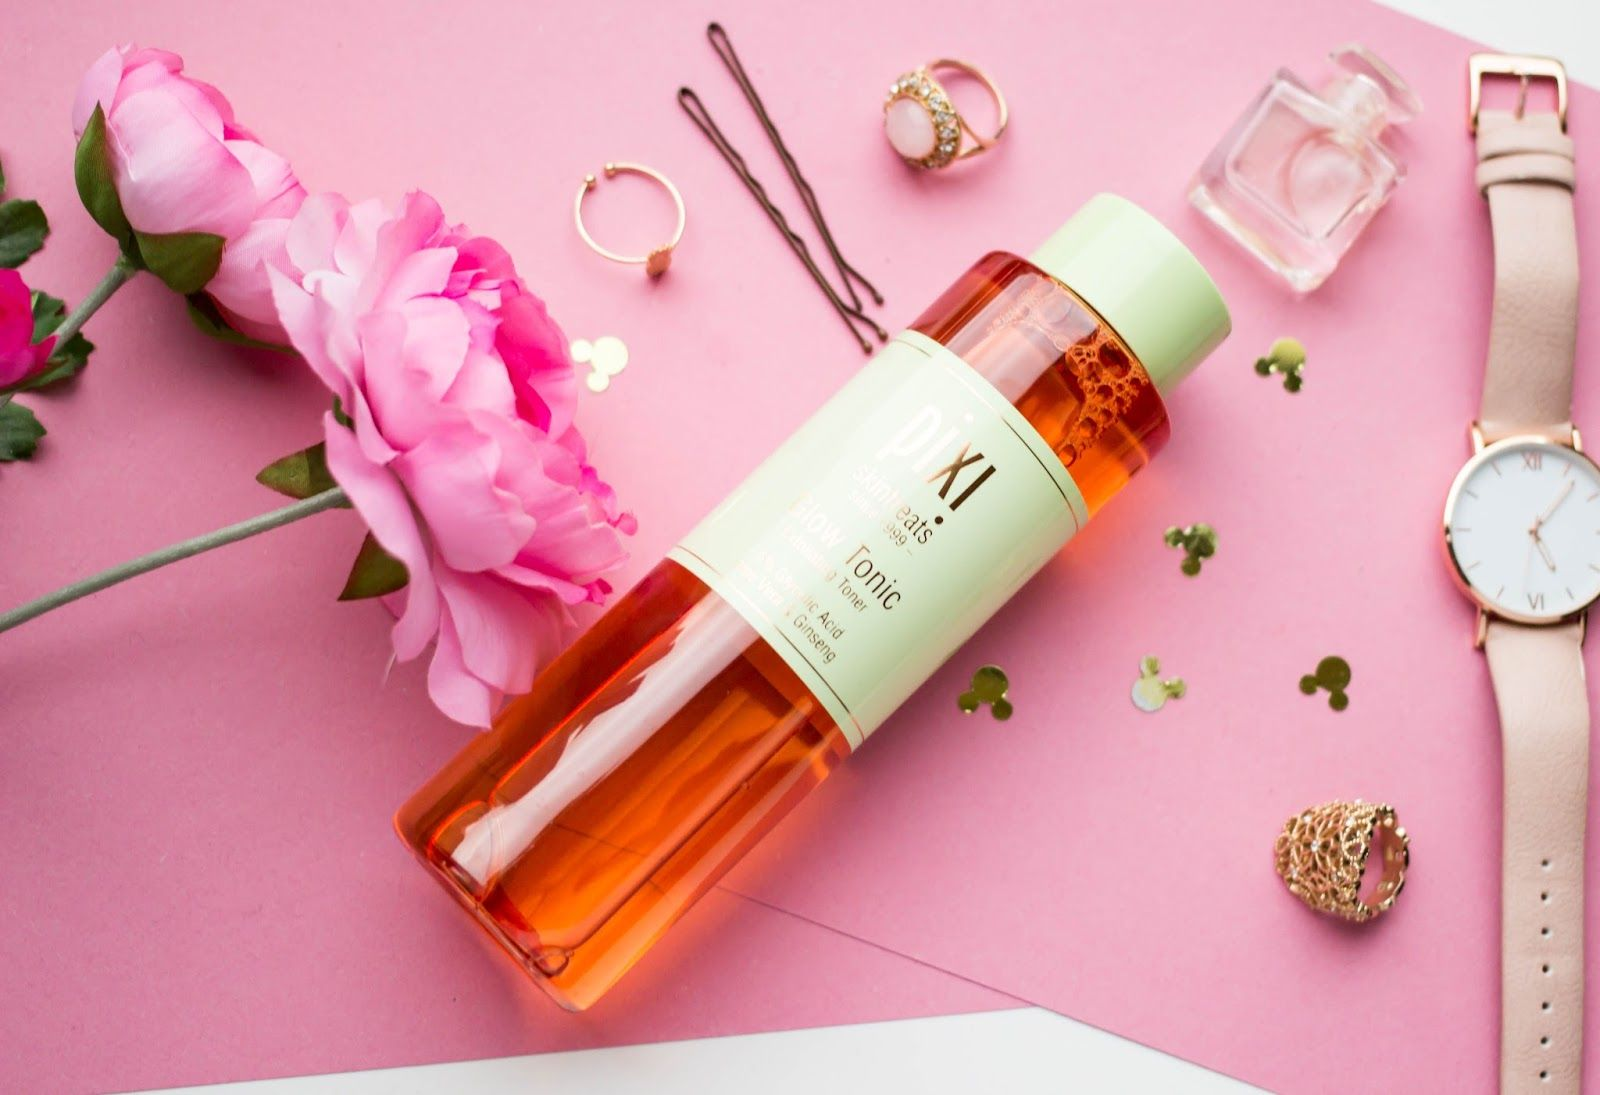 Review: Pixi Glow Tonic - Is It Worth the Money and Hype? | Pixi ...